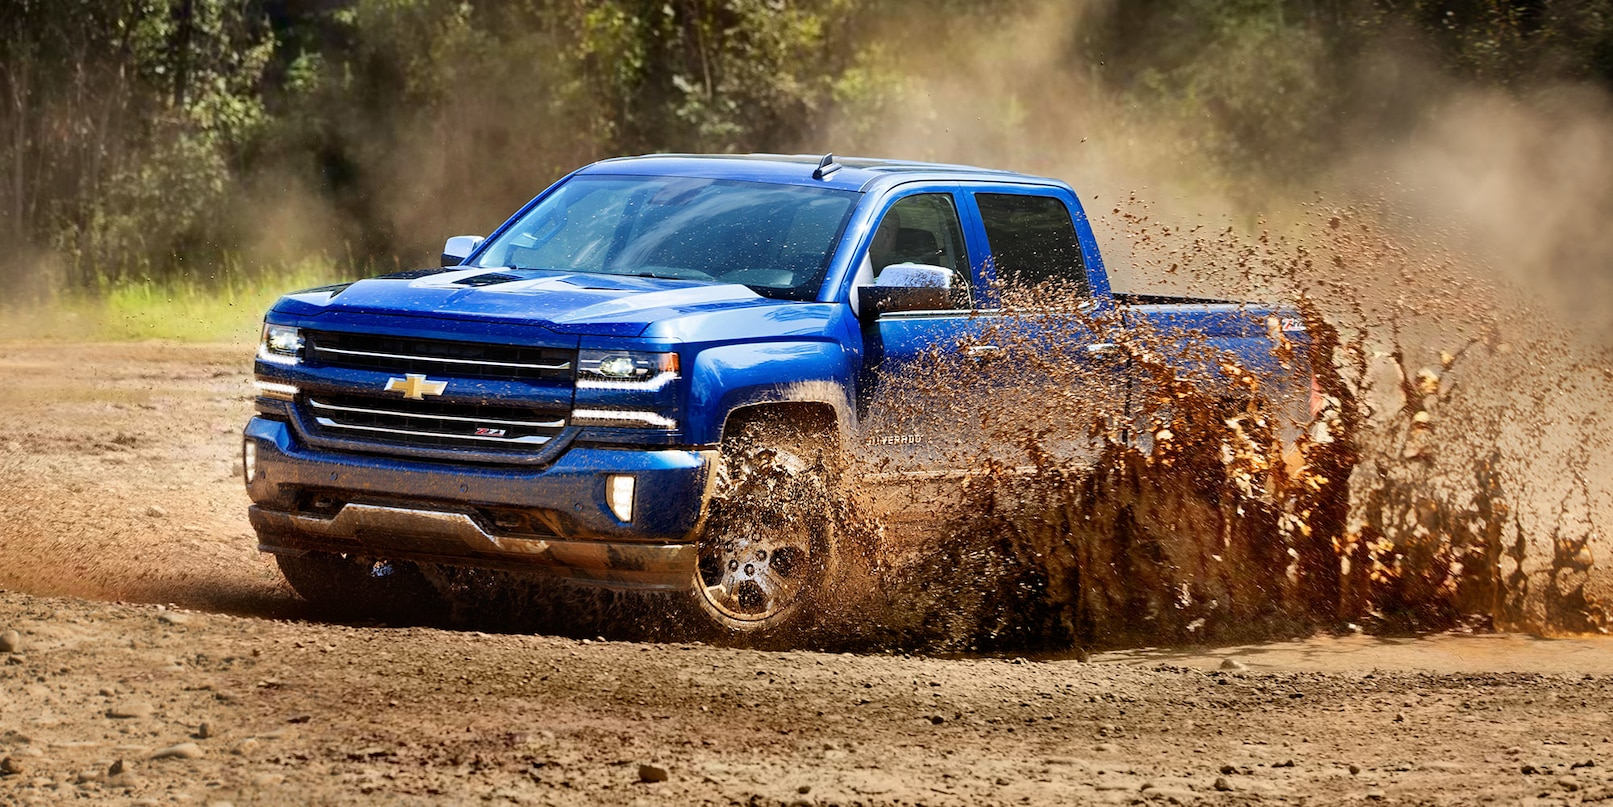 2019 Chevrolet Silverado 1500 Leasing near Schererville, IN